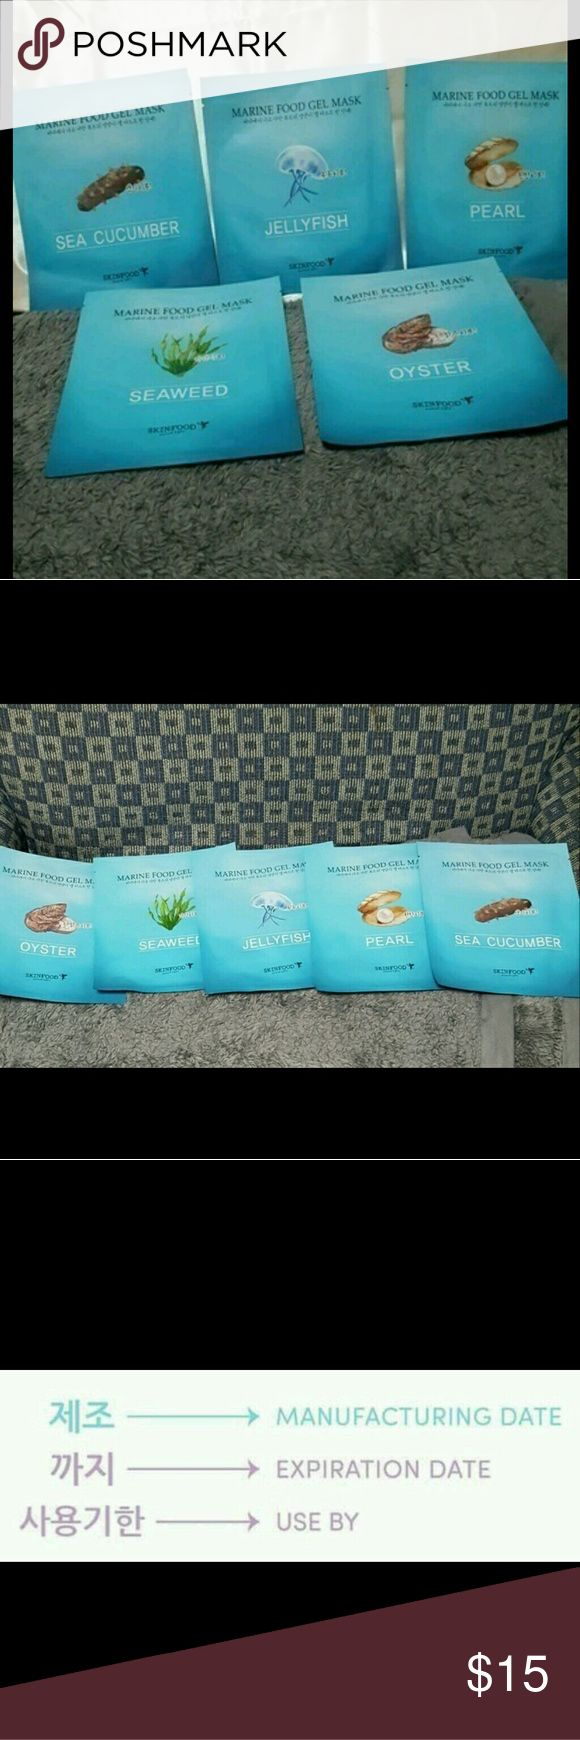 Skinfood Marine Food Gel Mask set * Please note that the manufacturing date is stamped and NOT the expiration date!!! This is standard with Korean cosmetics. This lot comes with the five masks shown.   Expiration date is three years from manufacturers date so this is good between July 19-20, 2018  #sheetmask #skinfood #korean Skinfood Other